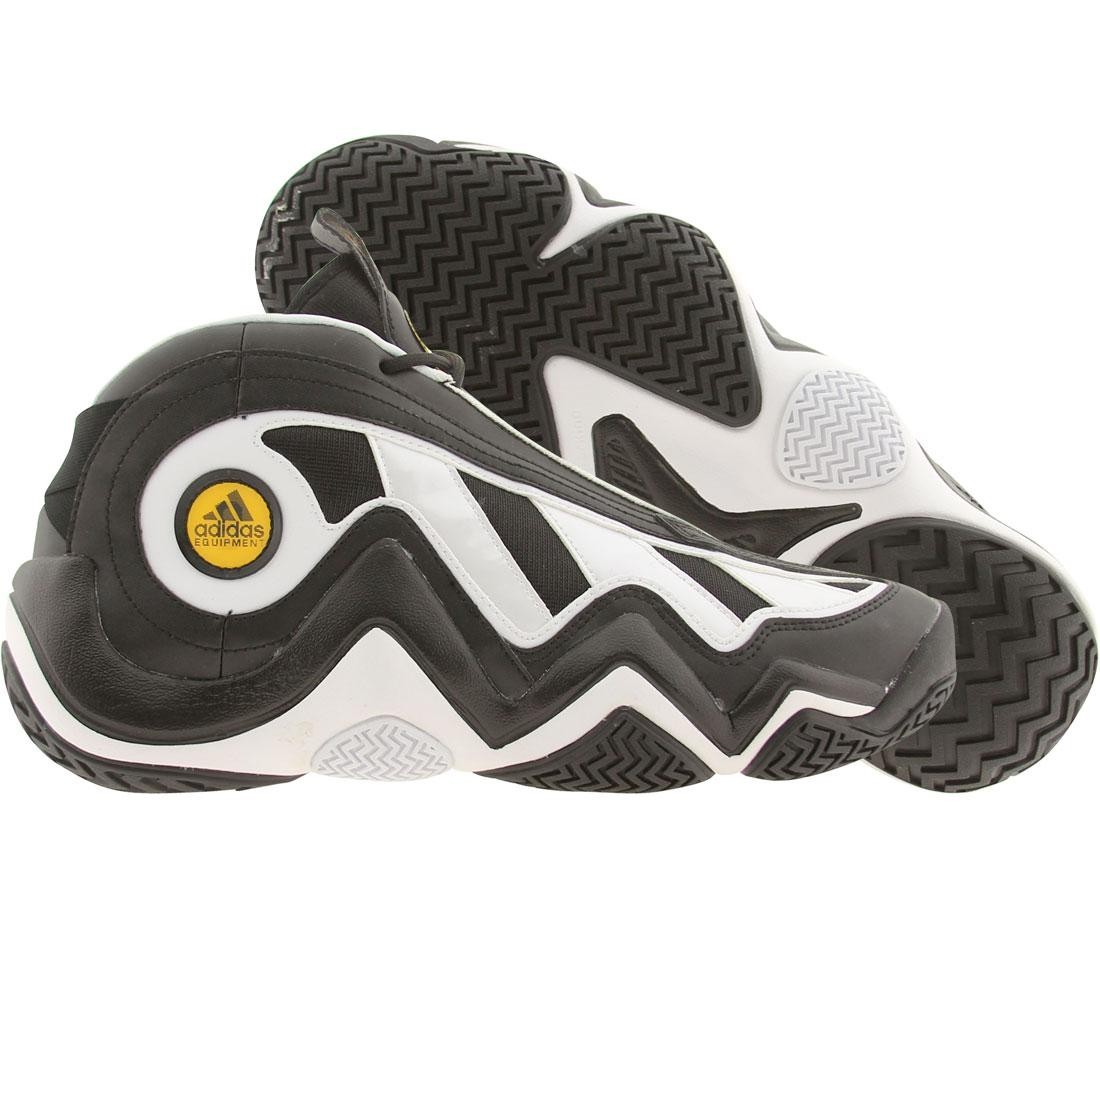 reputable site daf2a fd3e9 Adidas Men Crazy 97 EQT Elevation Retro Kobe Bryant black OG